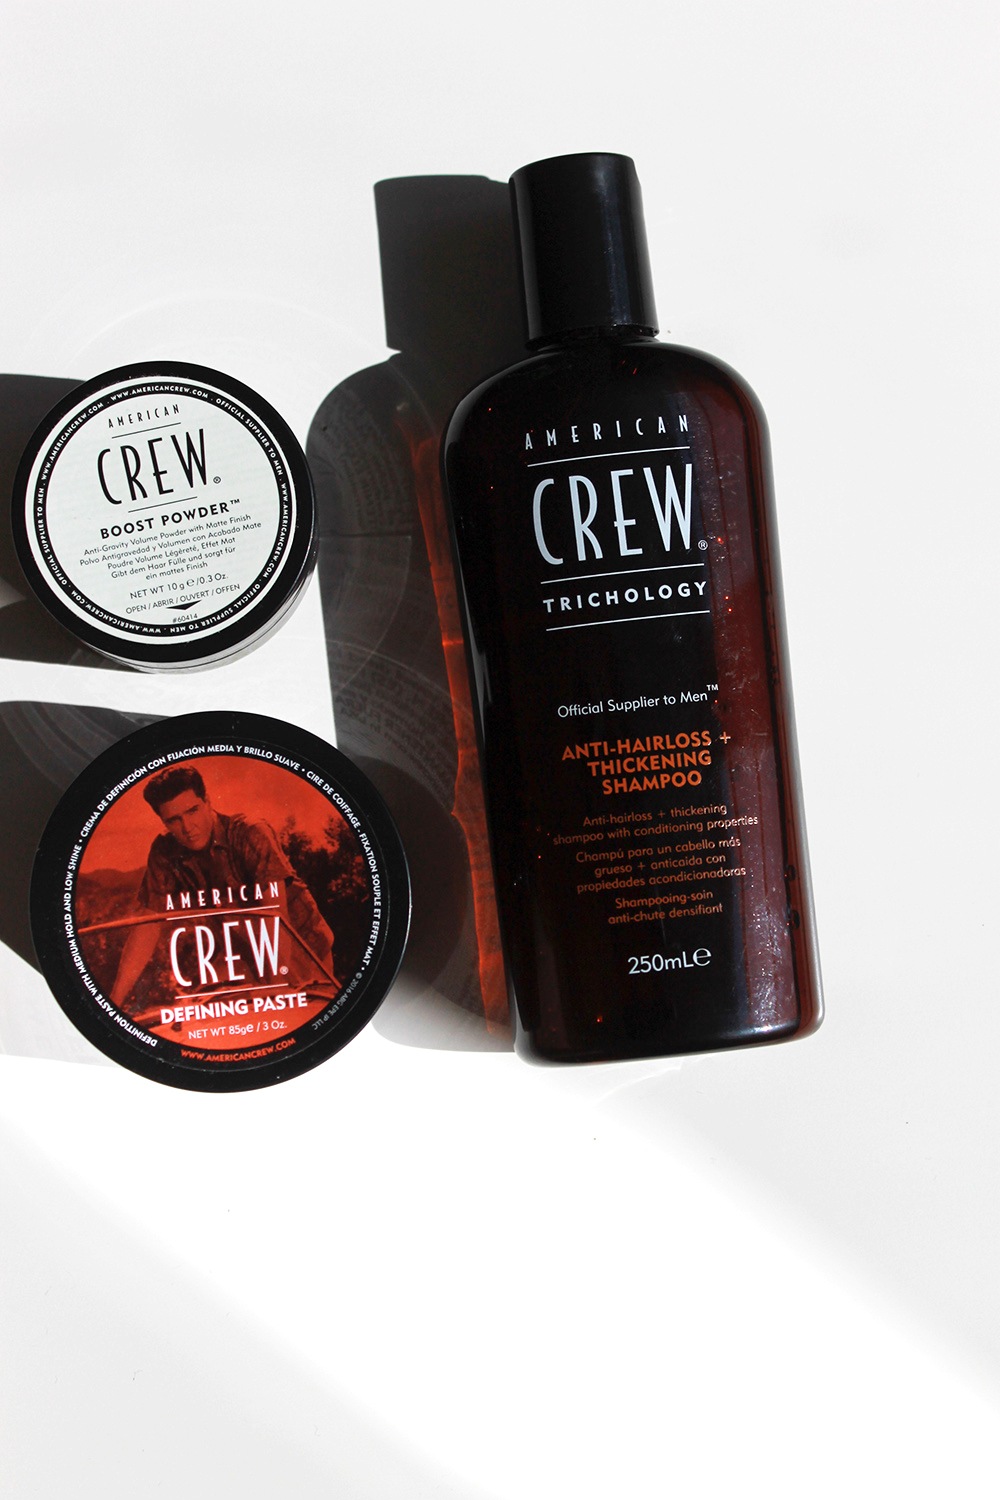 blog-mode-homme-strasbourg-american-crew-test-concours